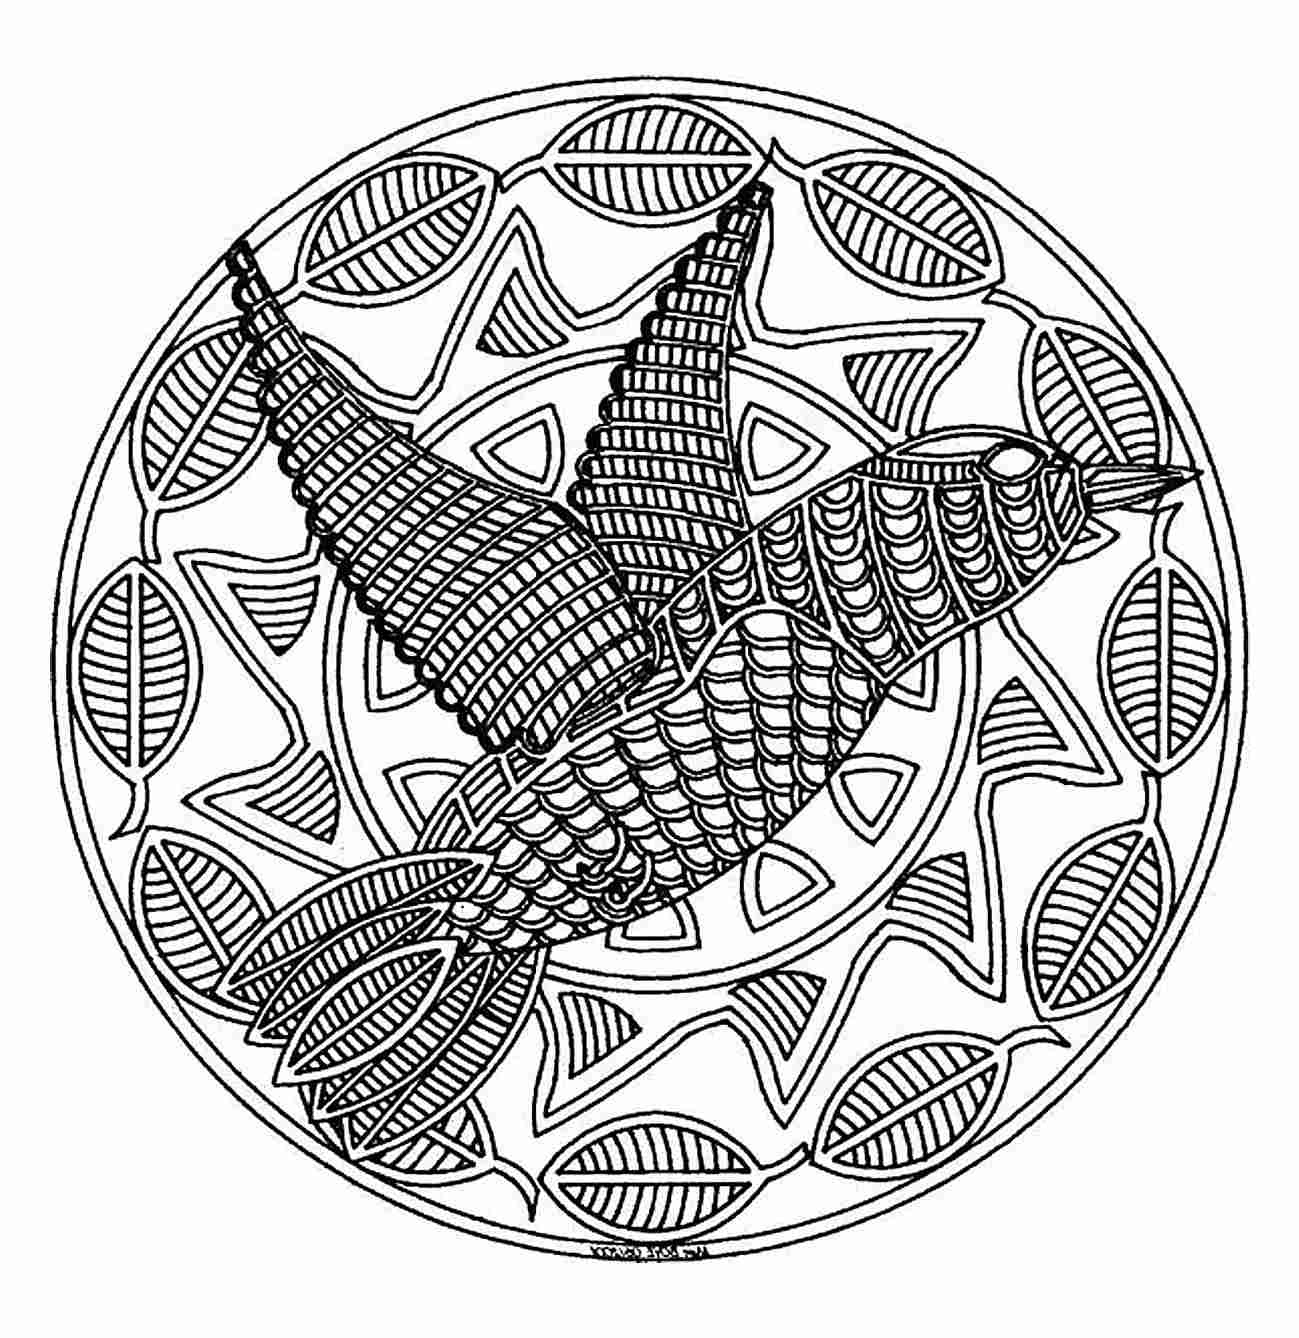 843 free mandala coloring pages for adults - Pictures To Color For Free